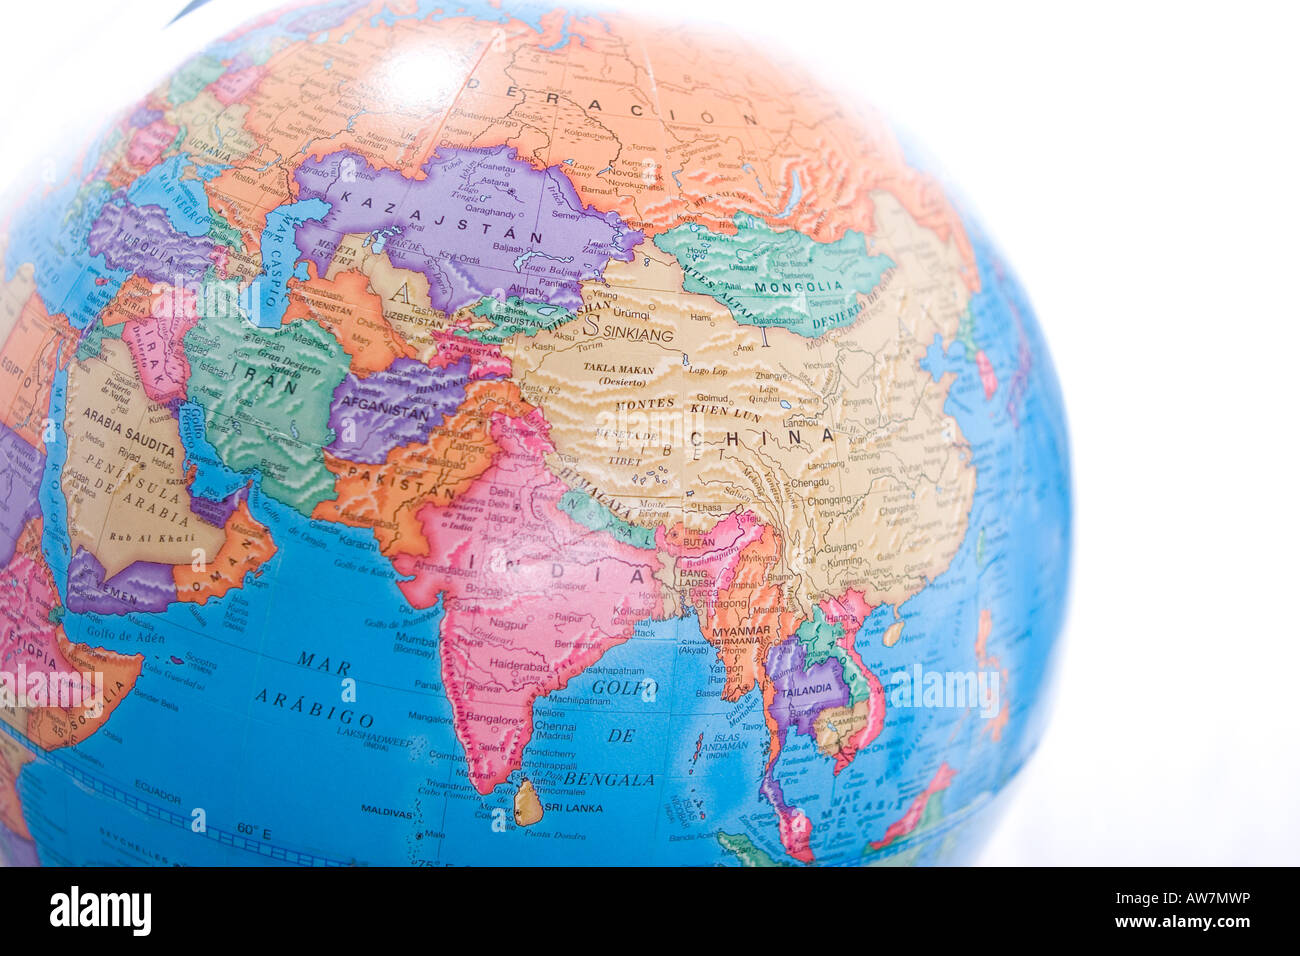 Stock Photo  World Map Globe Showing Asia Continent Isolated On White  Background